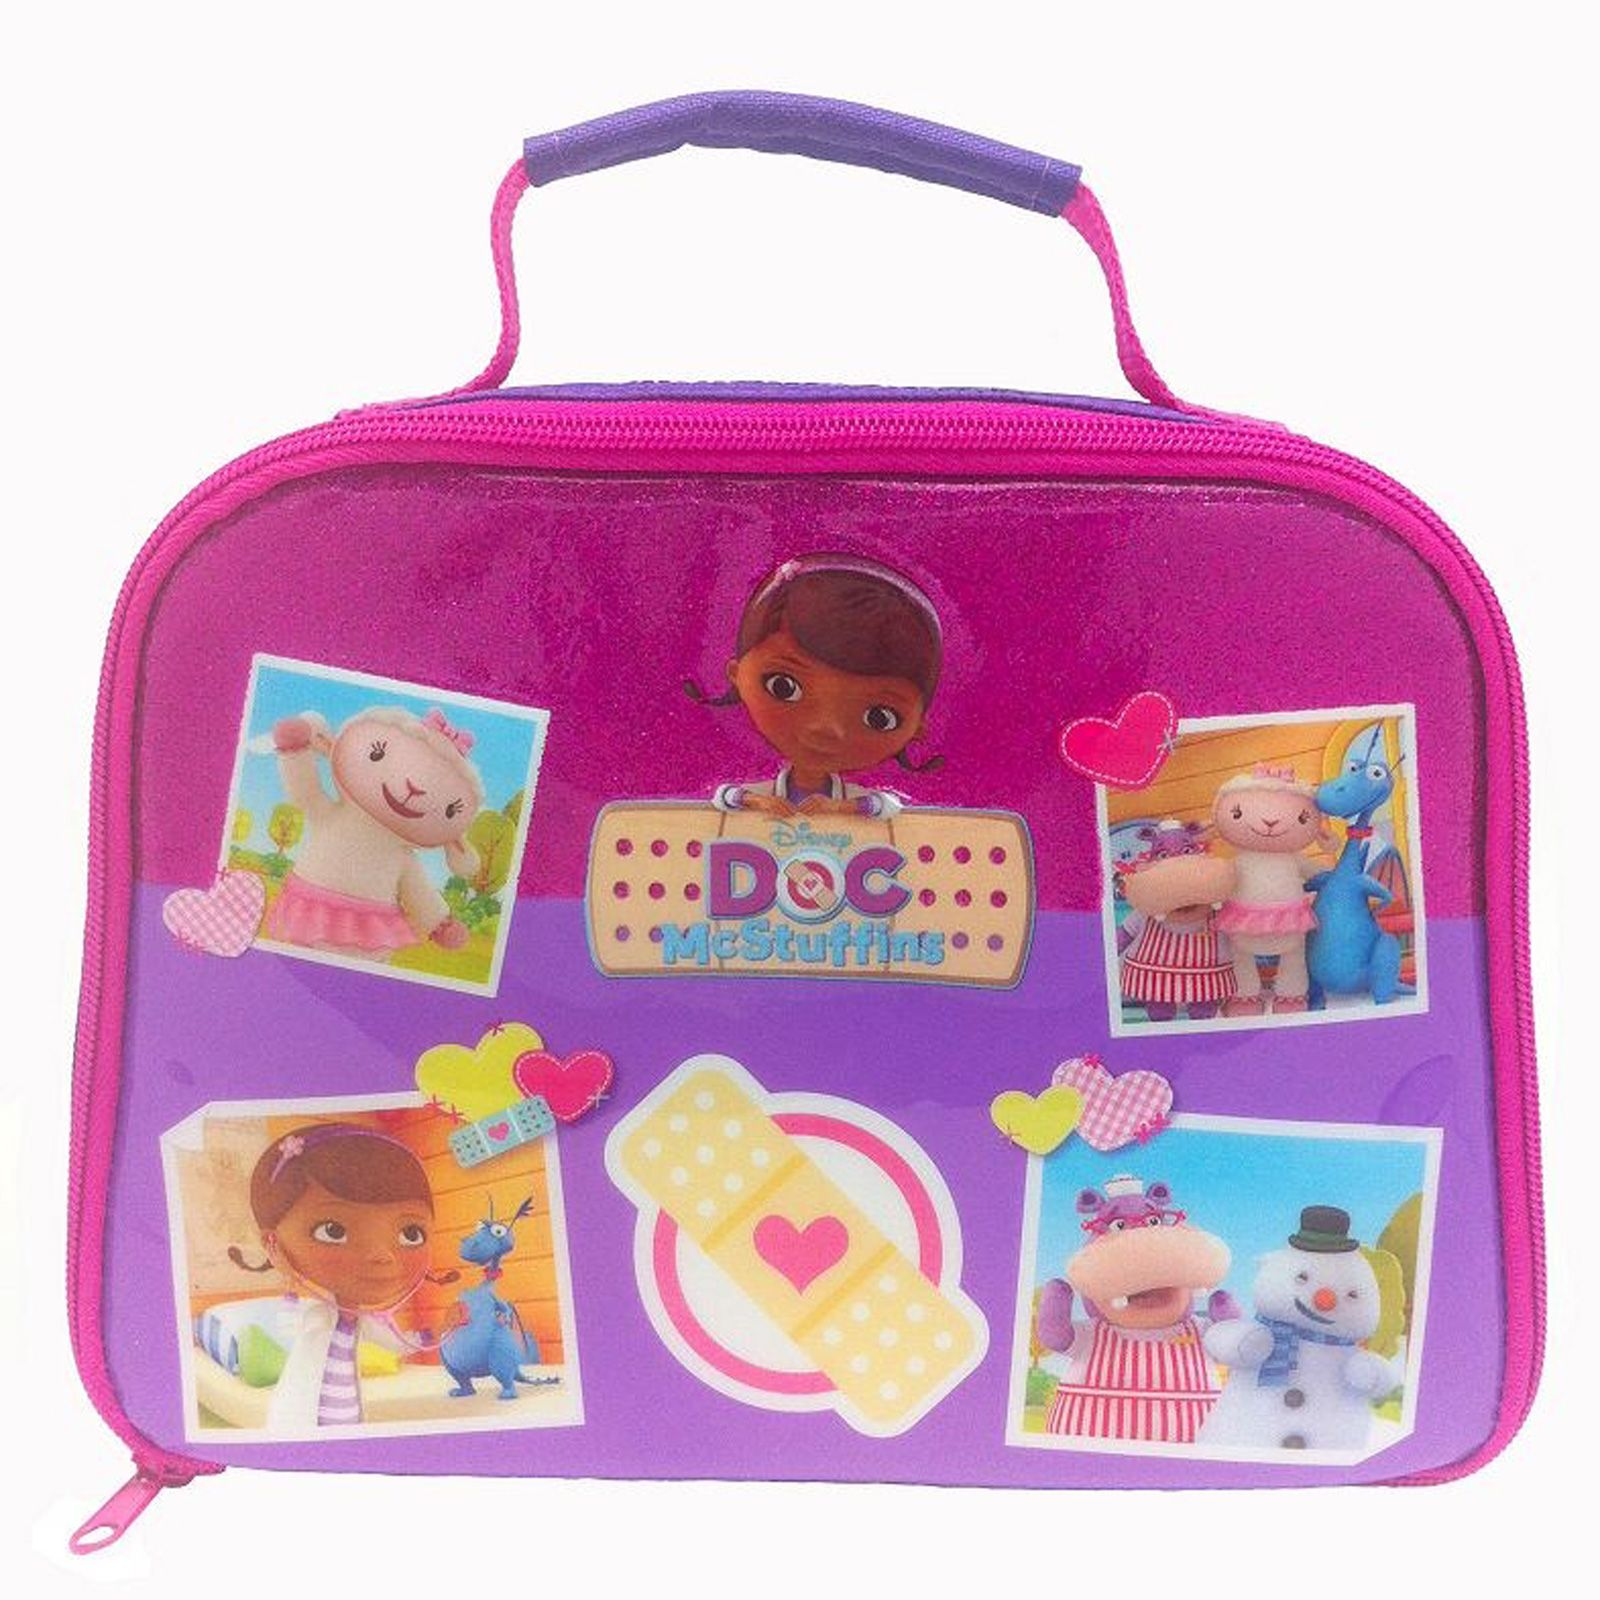 doc mcstuffins upholstered chair uk round oak table and chairs insulated school lunch bag new disney ebay